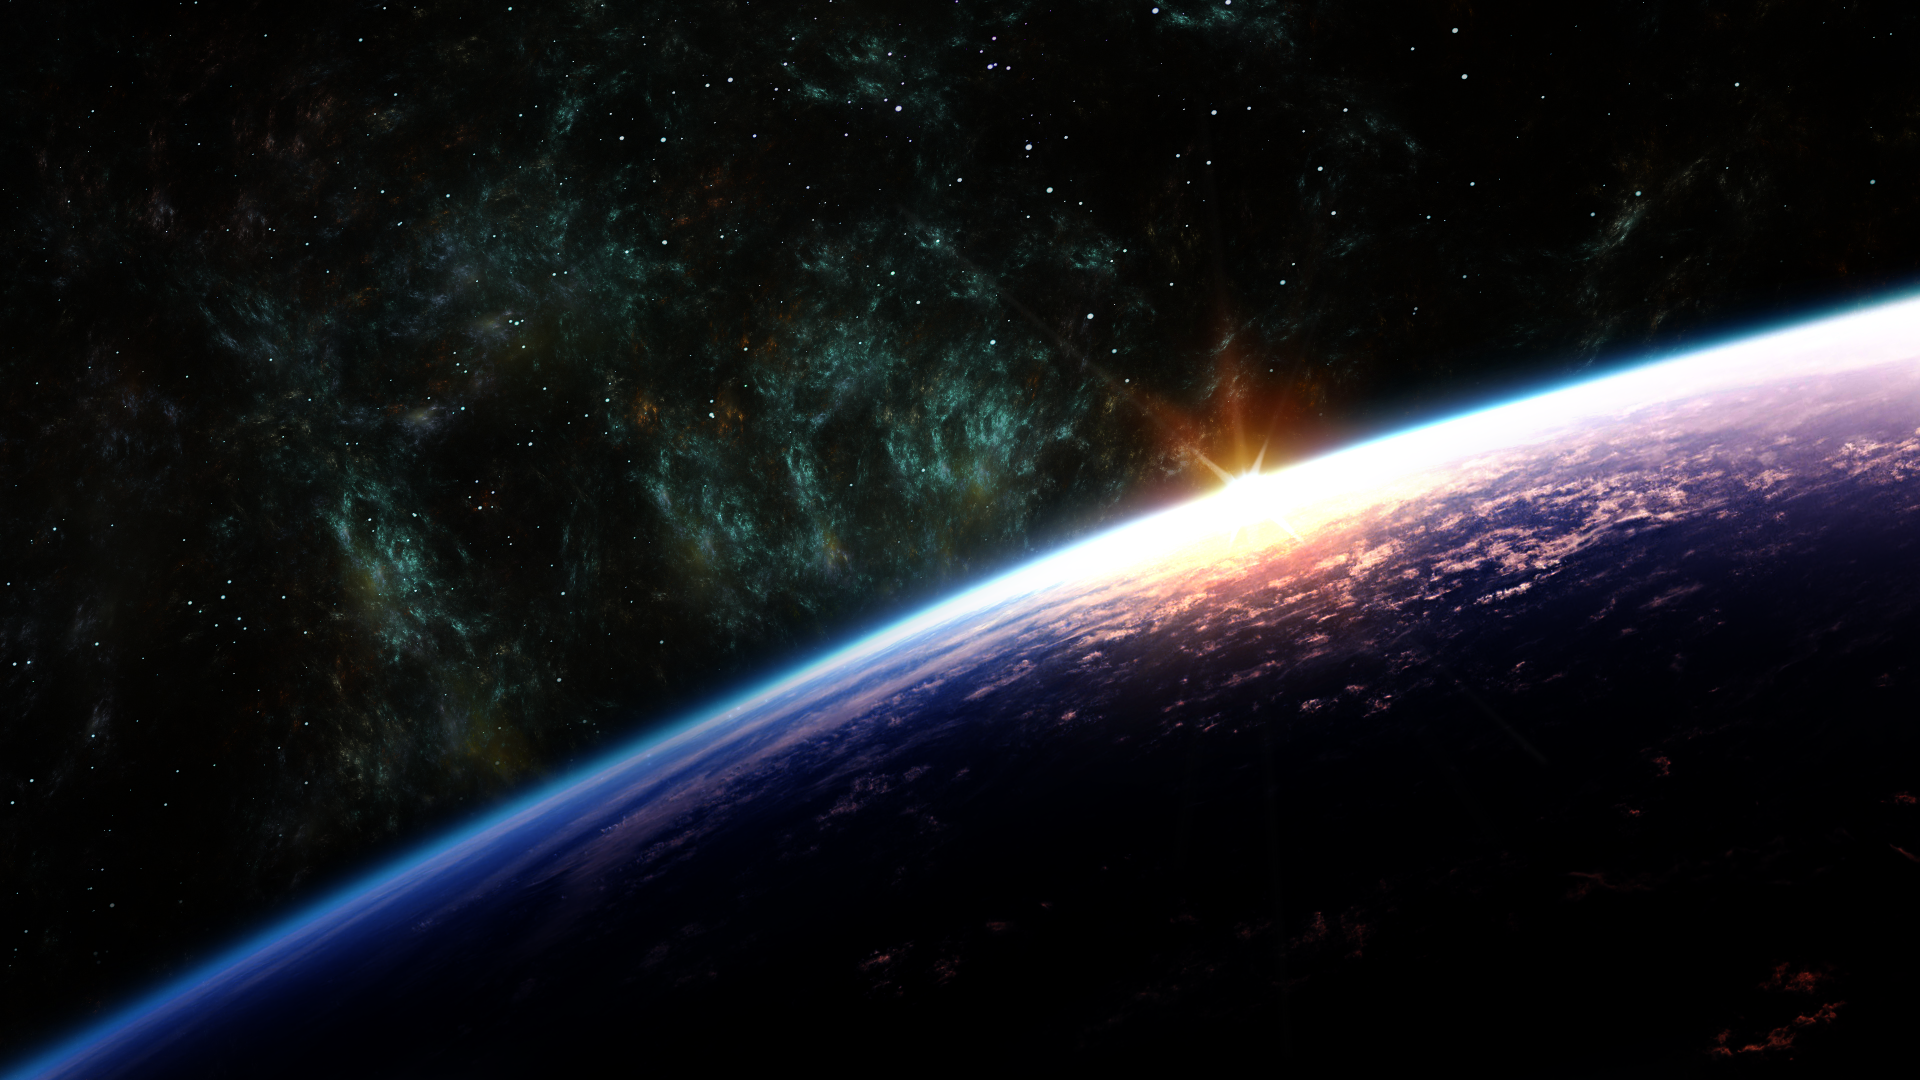 Space Wallpaper by Ivanuvo on DeviantArt